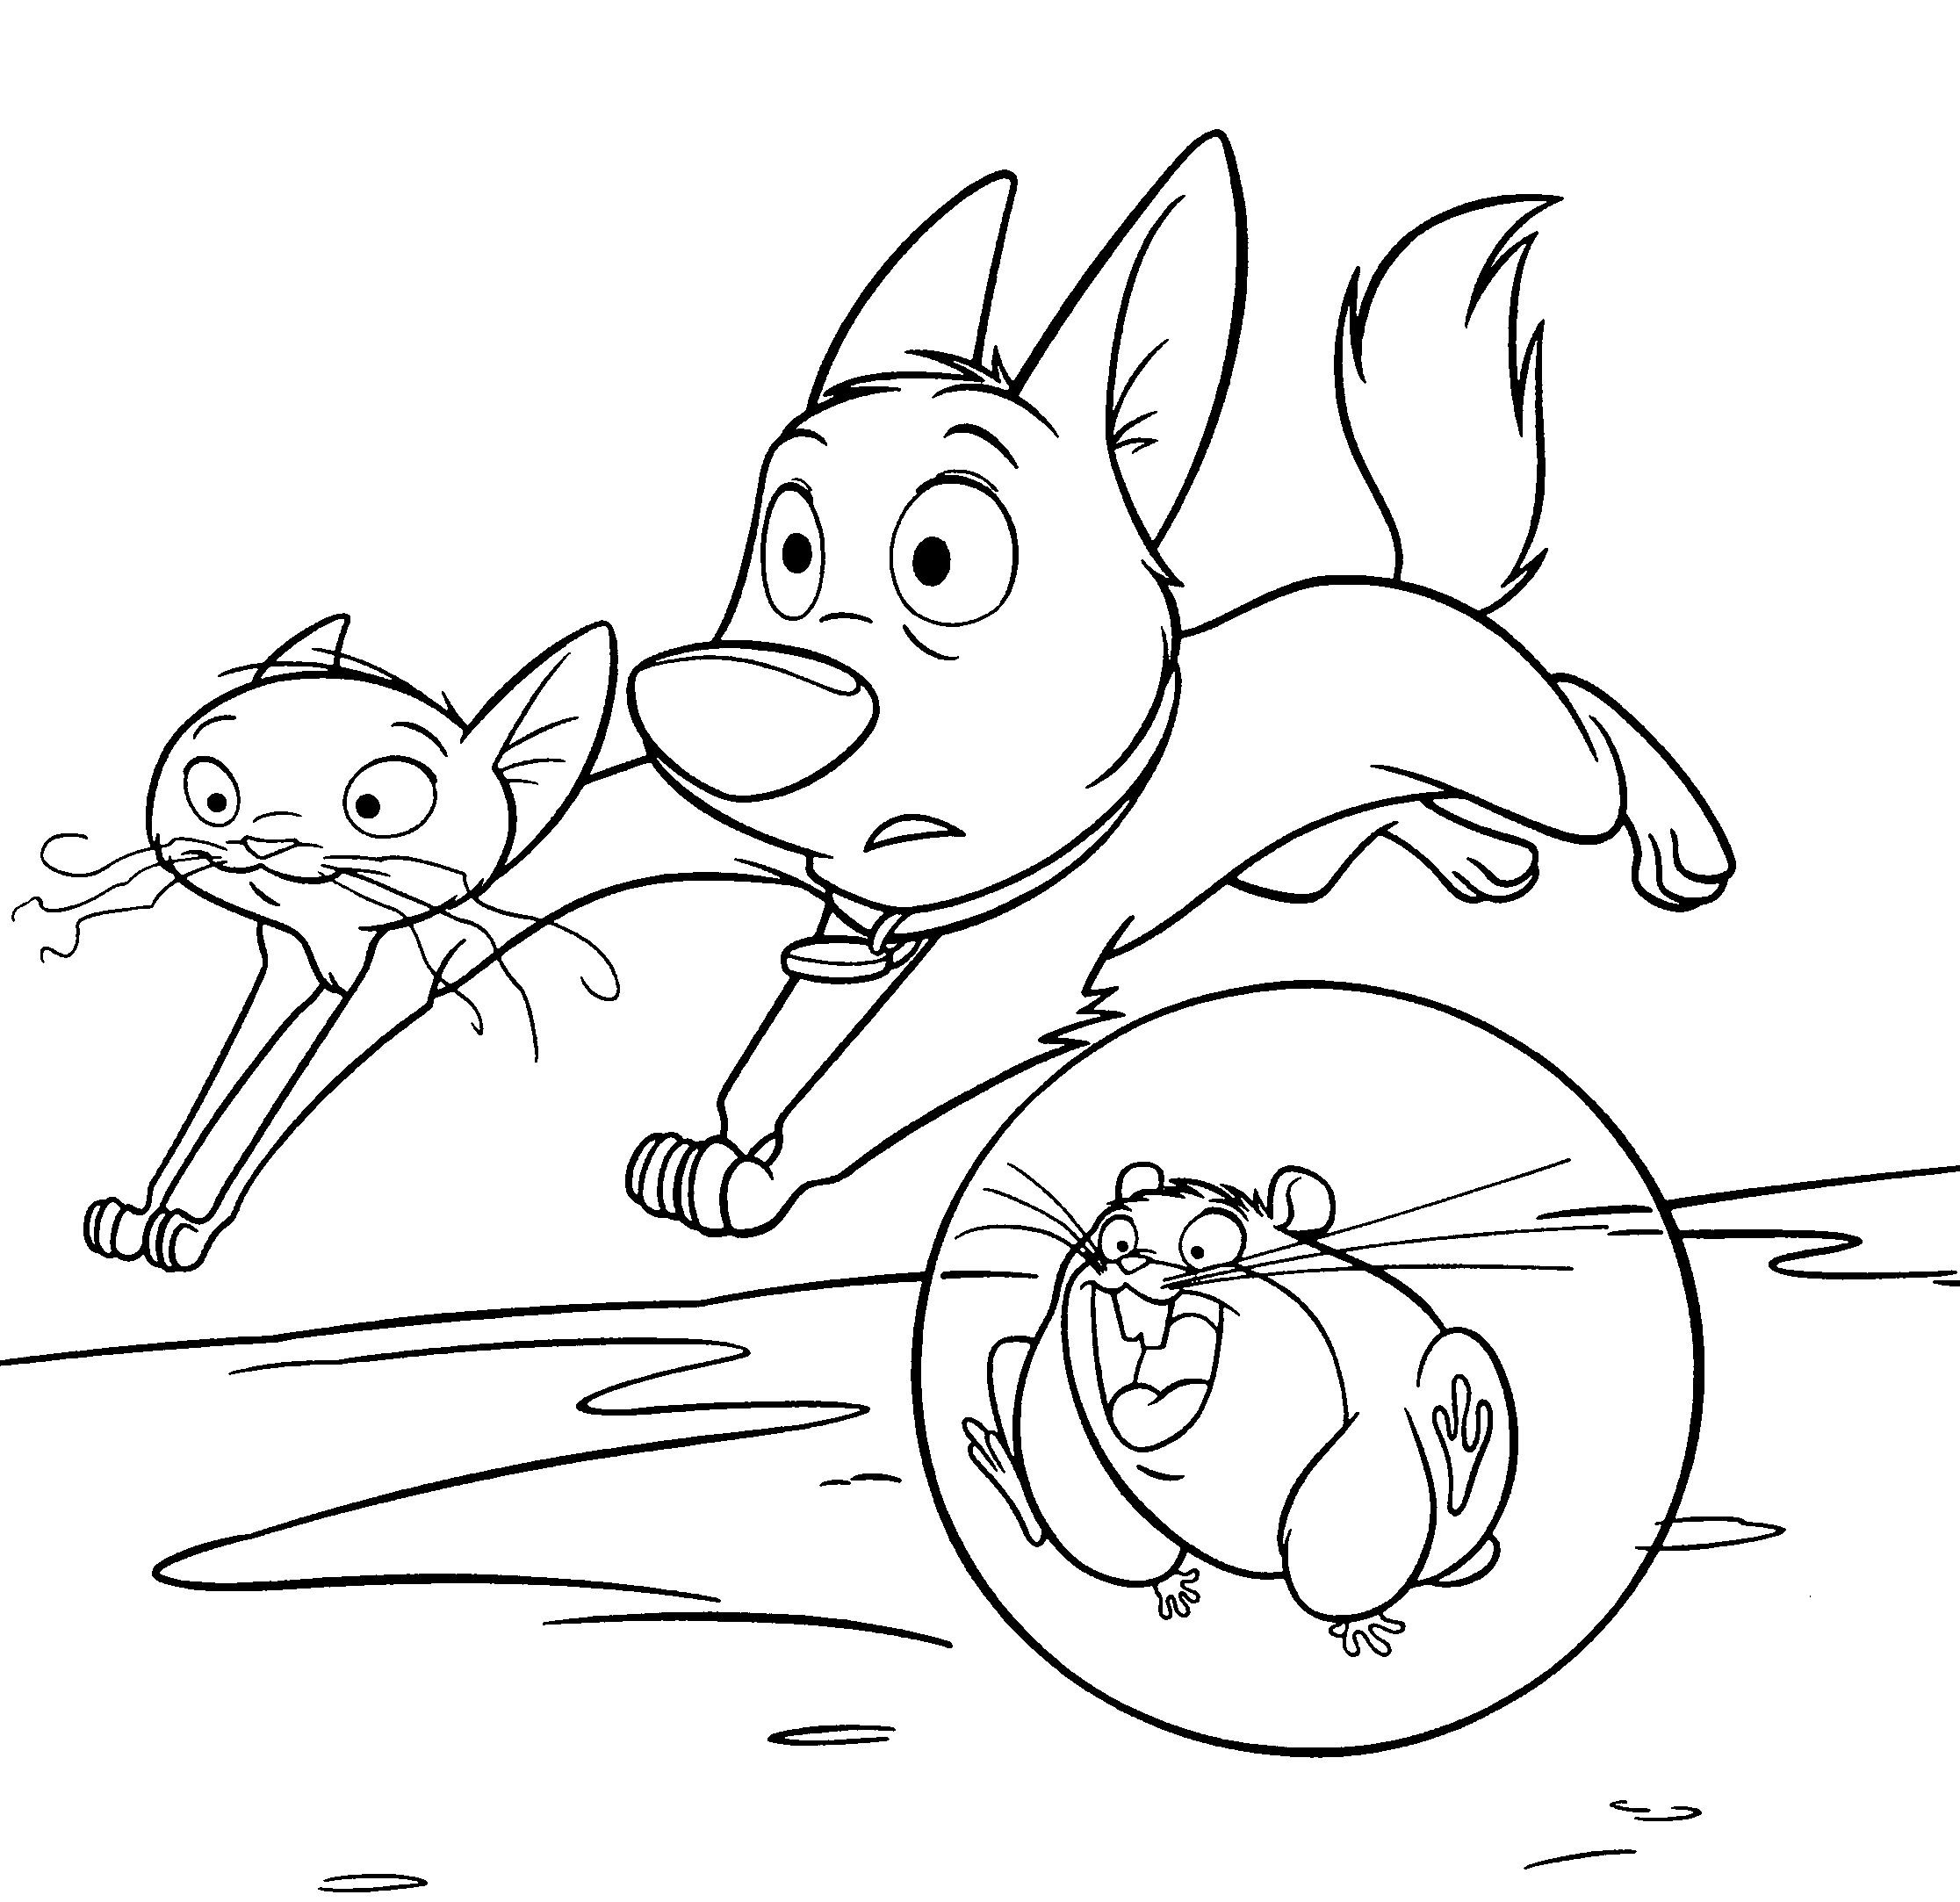 Bolt And Cat Jumping Coloring Page